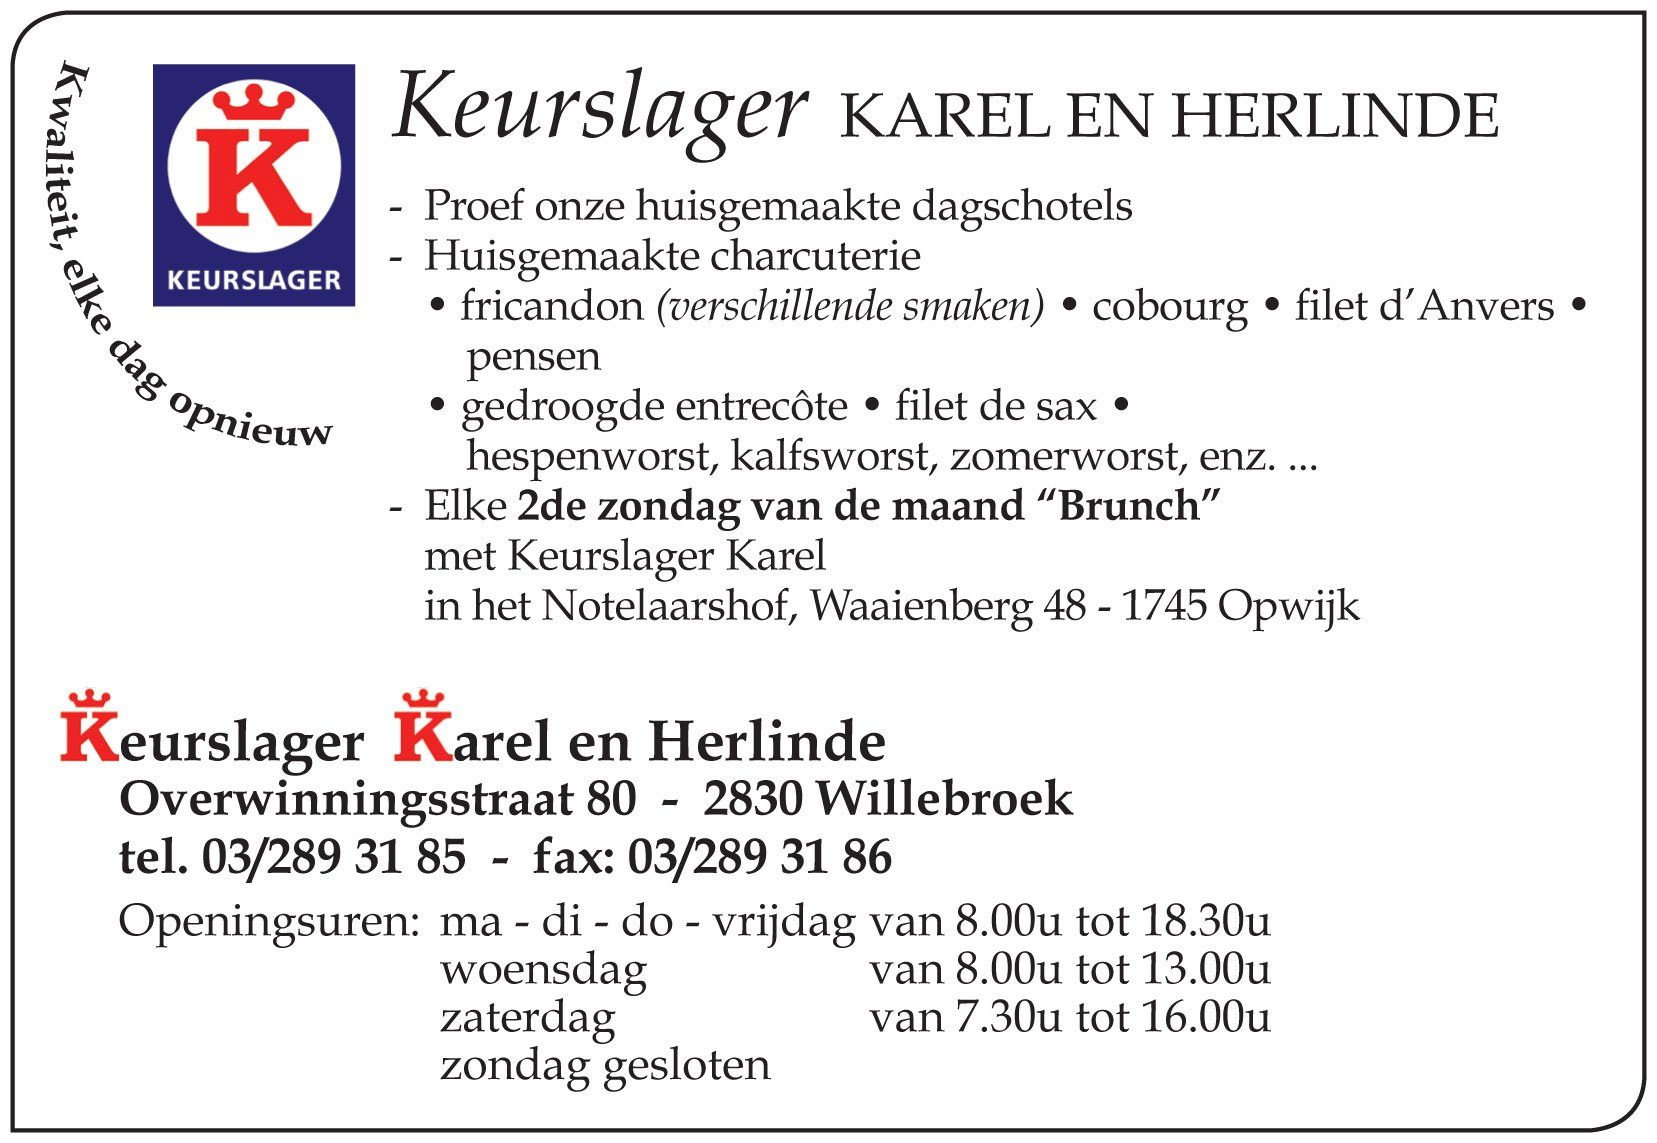 adv-karel-en-herlinde